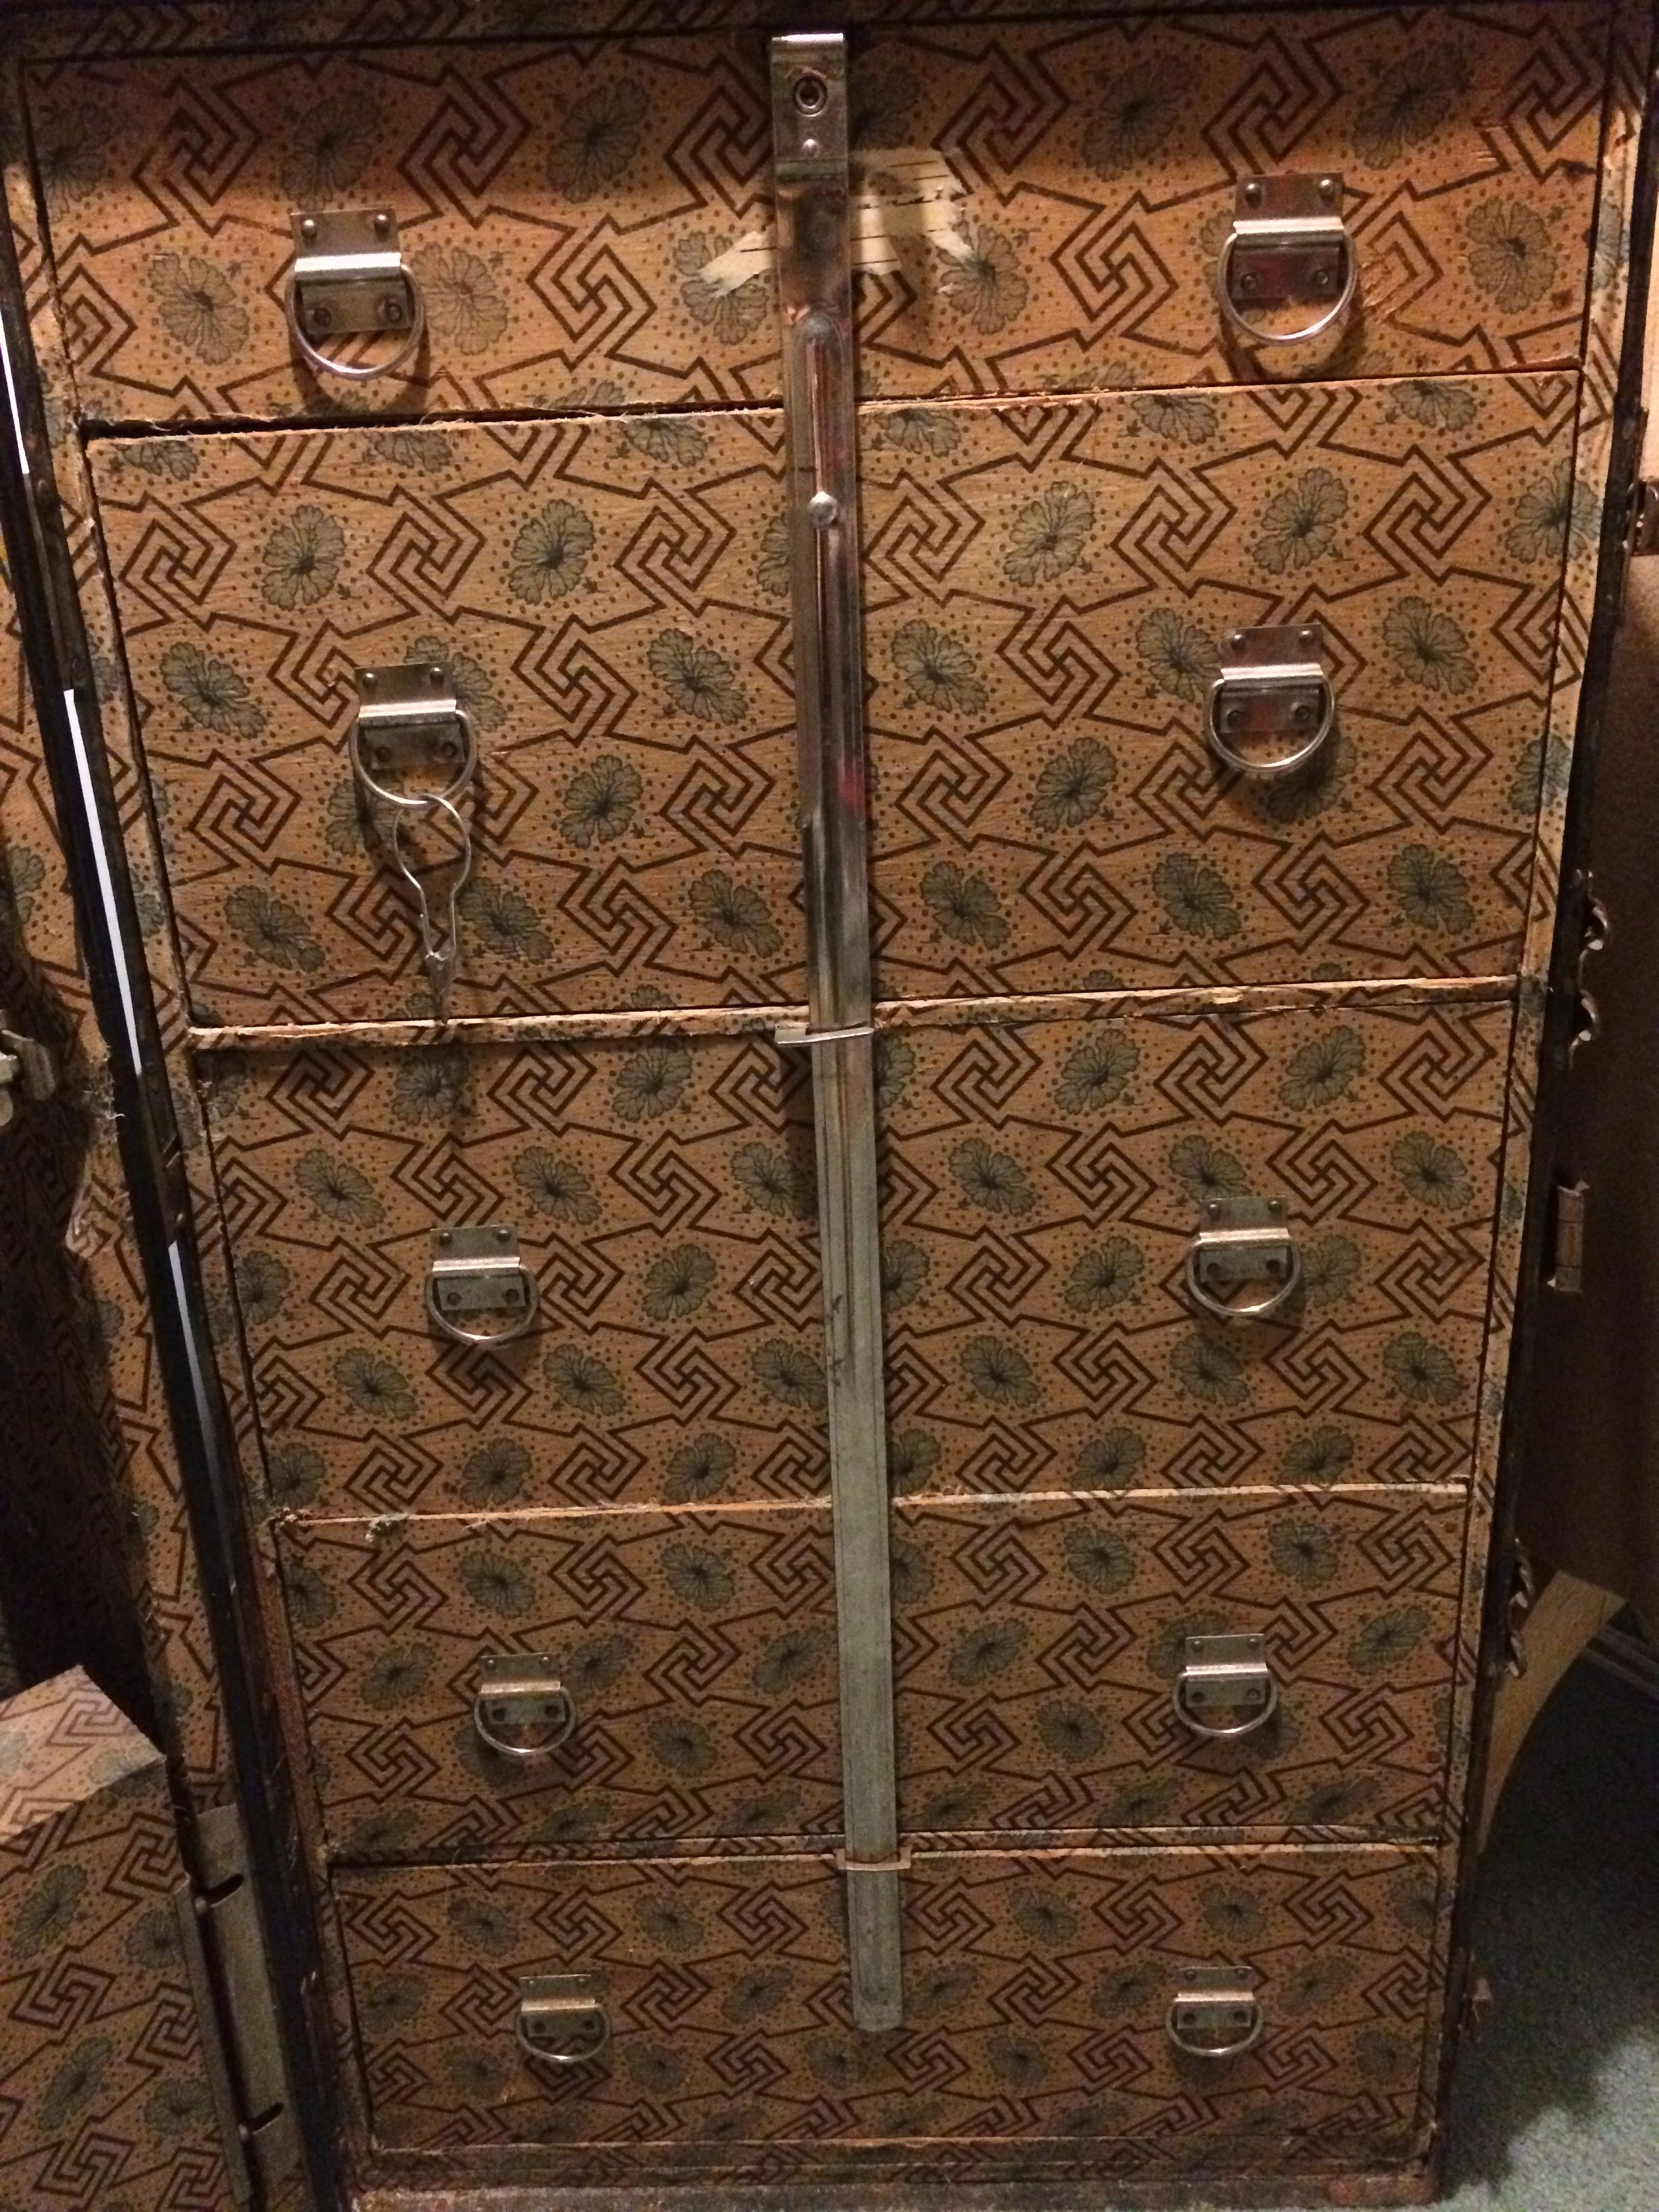 Steamer Trunk Furniture Multnomah Wardrobe Steamer Trunk Baggageman Proof 1920s